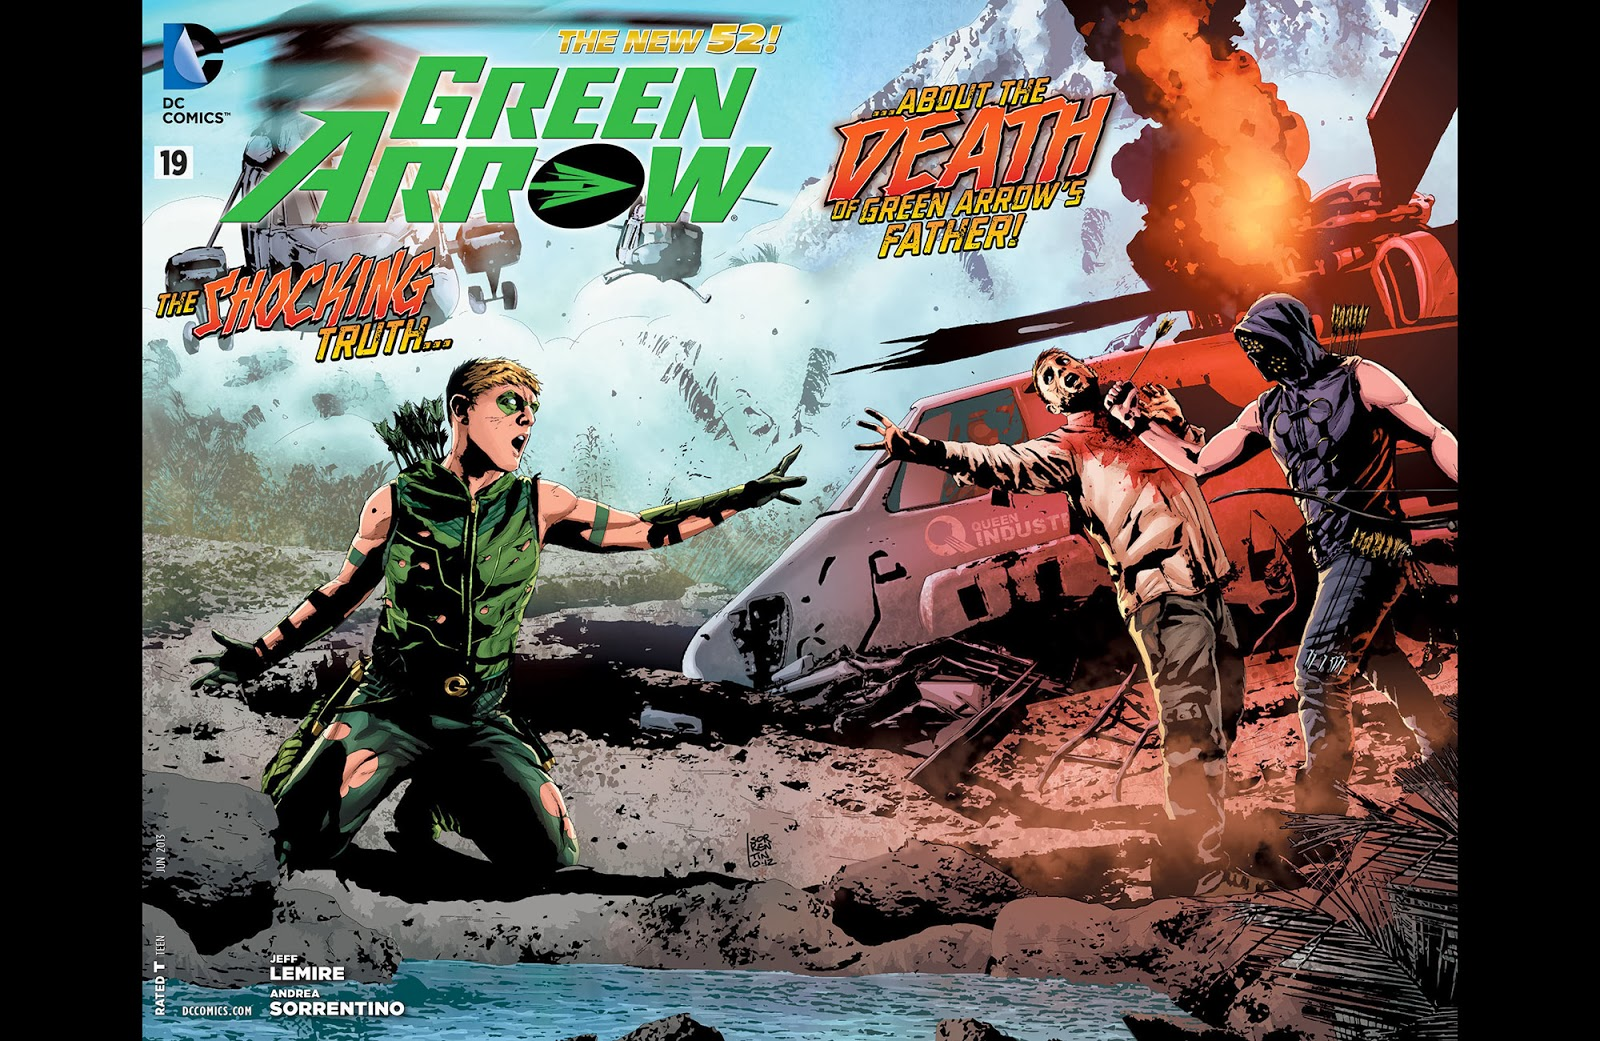 Green Arrow v6 019 ……………………………………